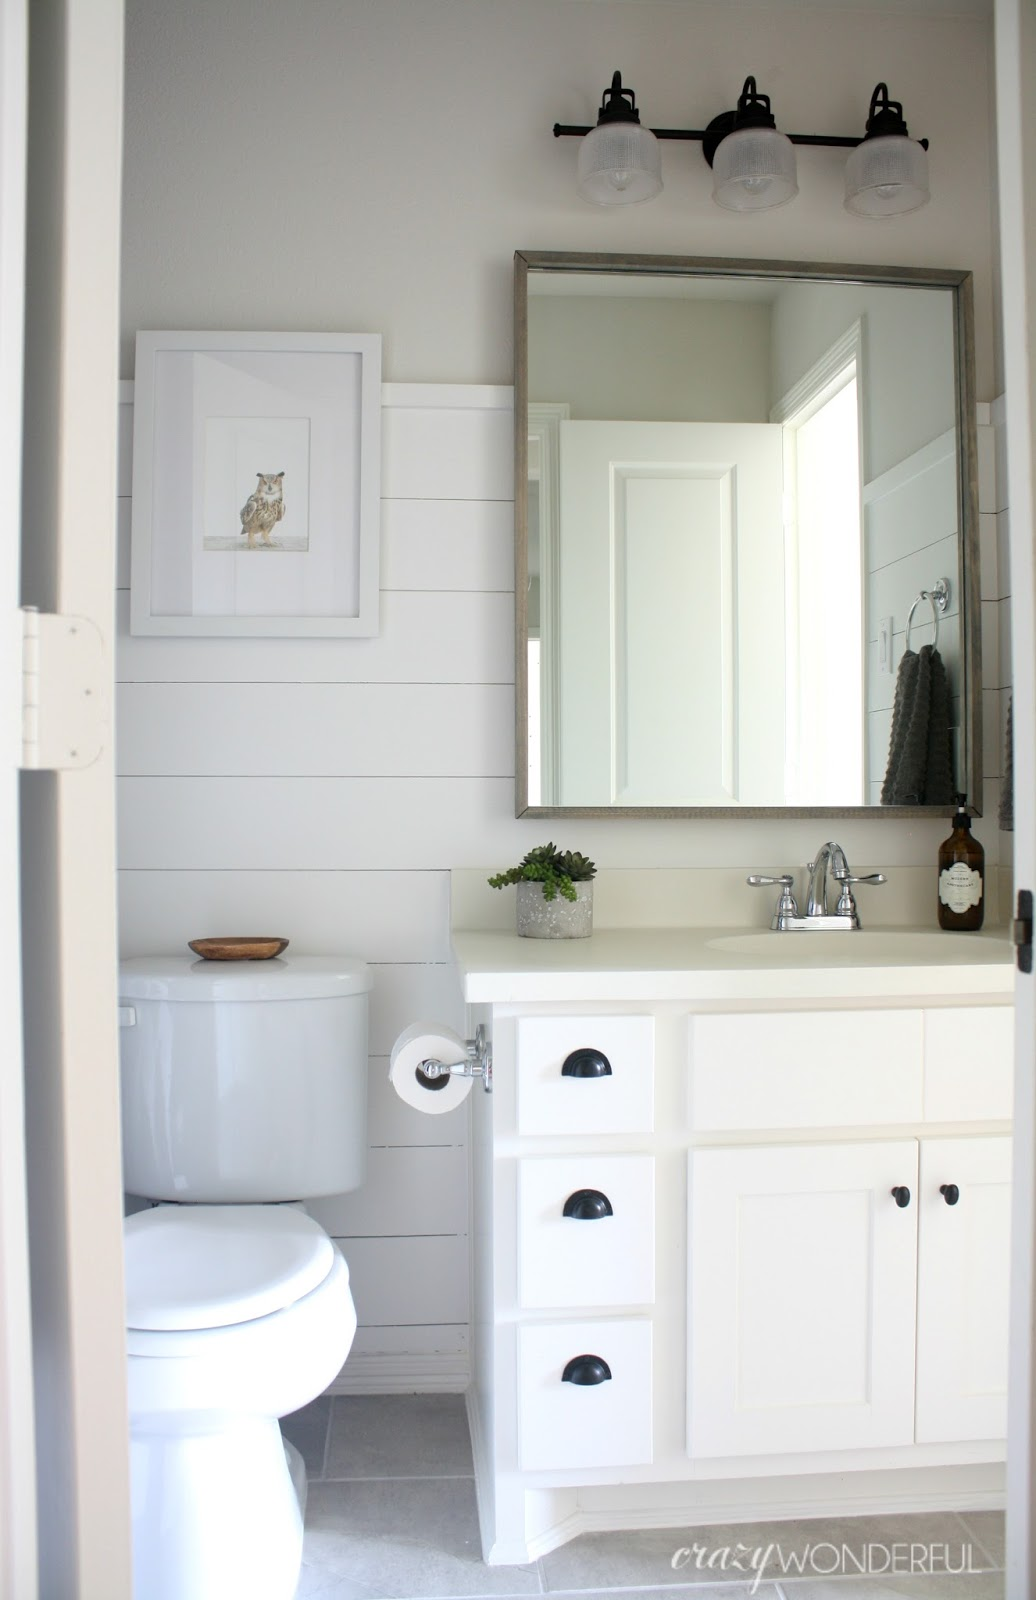 Pictures For Bathroom Walls Shiplap Boy 39s Bathroom Reveal Crazy Wonderful